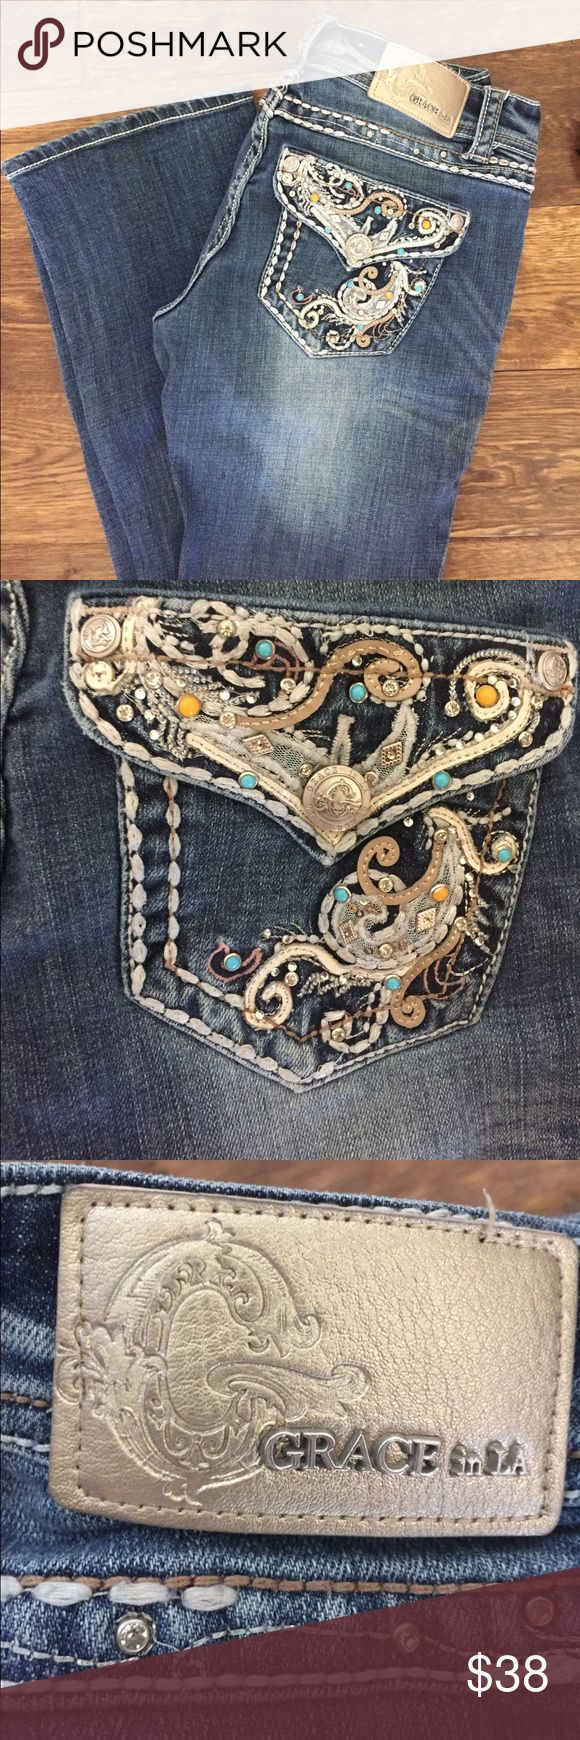 Bling jeans No sign of wear on bottom, orange and turquoise stone detail on pocket design! Only worn once, and are super cute with cowboy boots! Grace Jeans Boot Cut